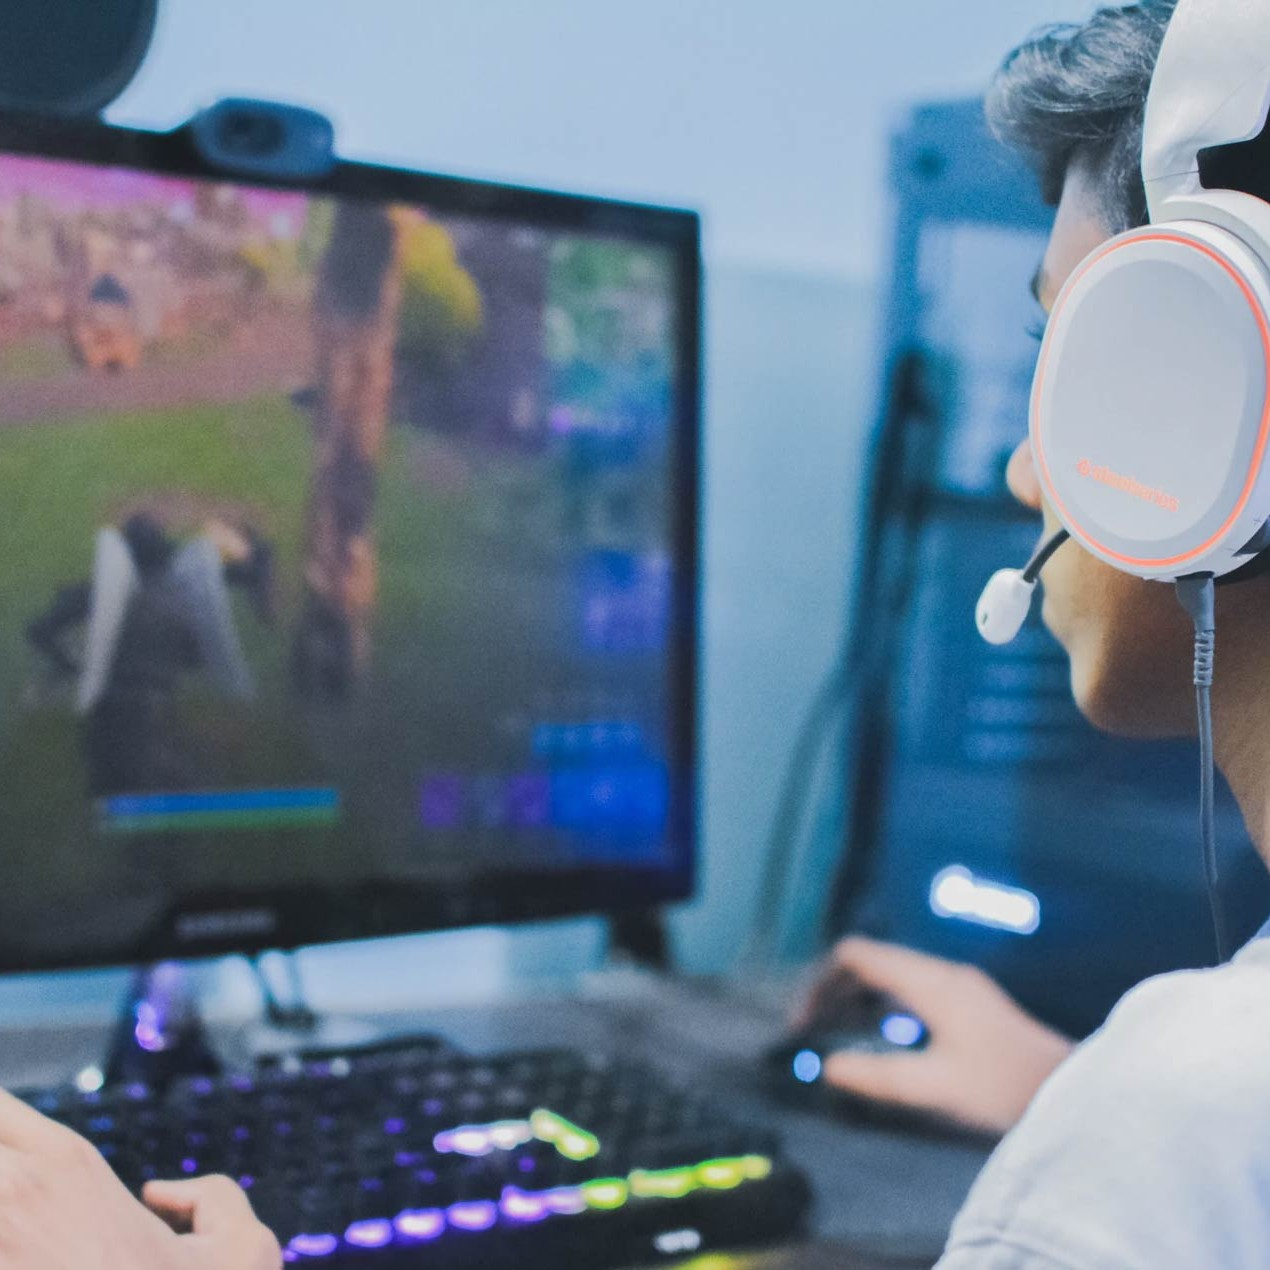 Pandemic and Videogames. Is it an Addiction problem?